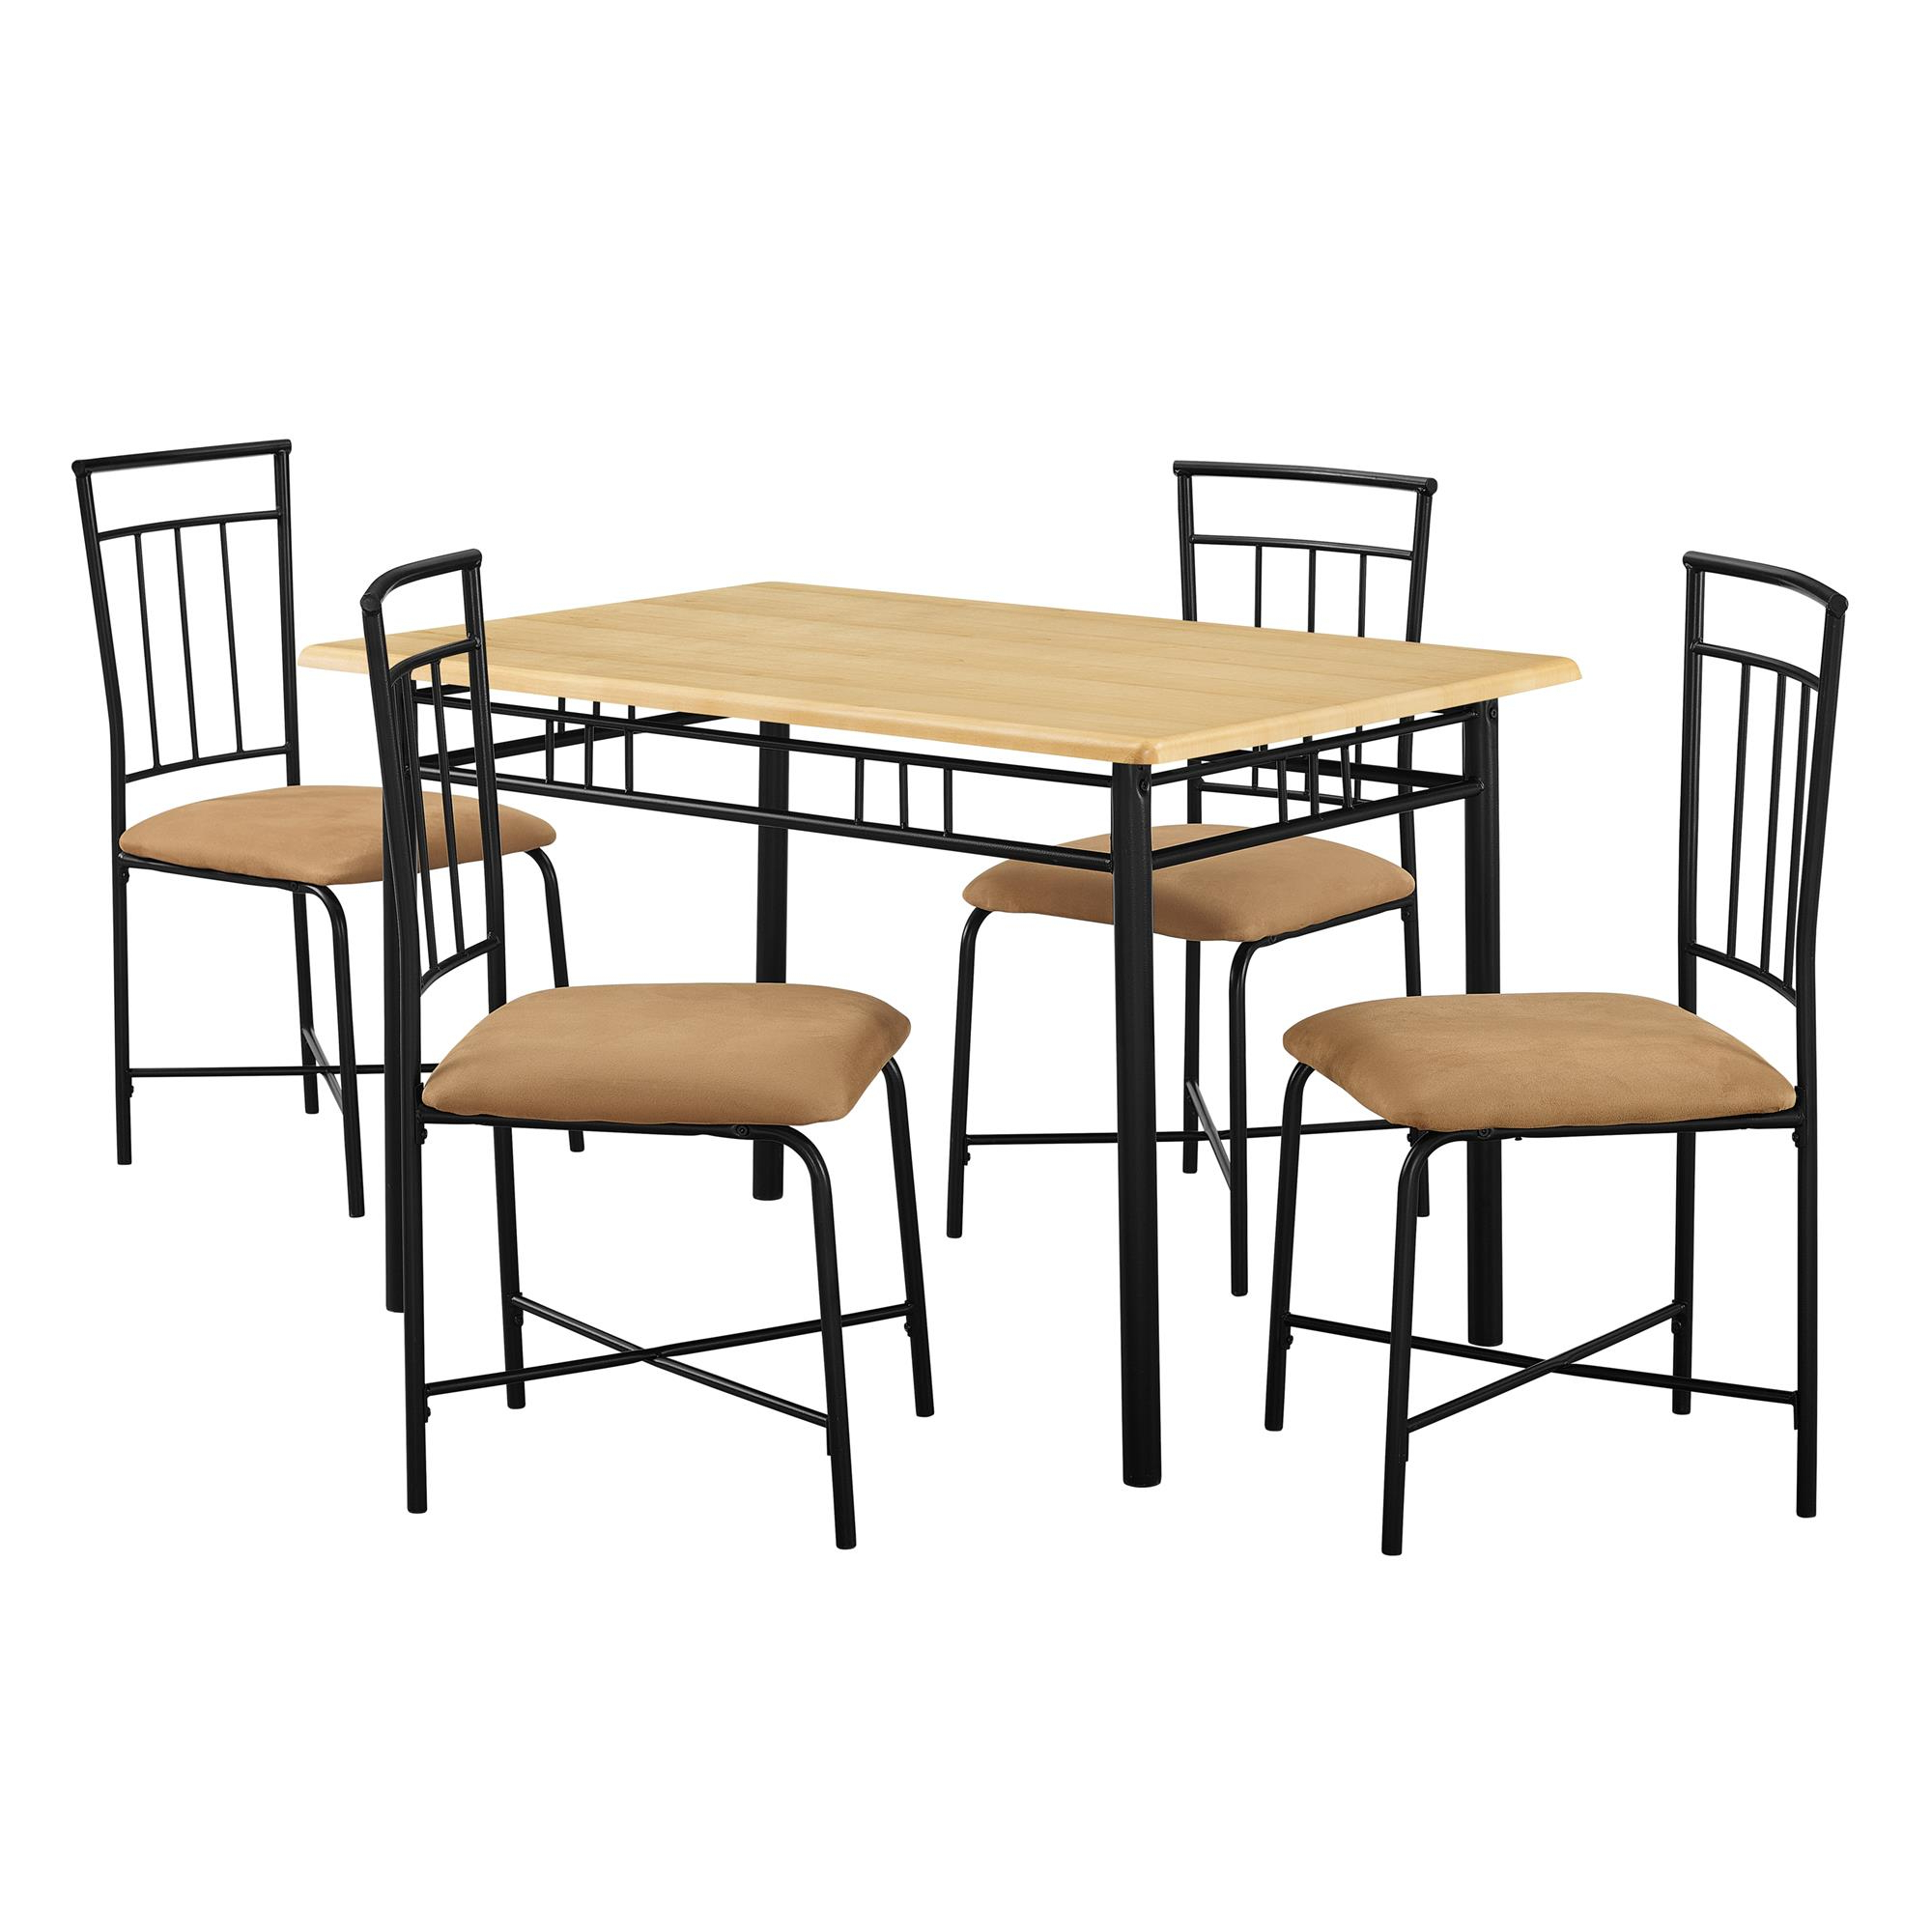 West Hill Family Table 3 Piece Dining Sets For Most Popular Mainstays 5 Piece Dining Set, Multiple Colors – Walmart (View 22 of 25)